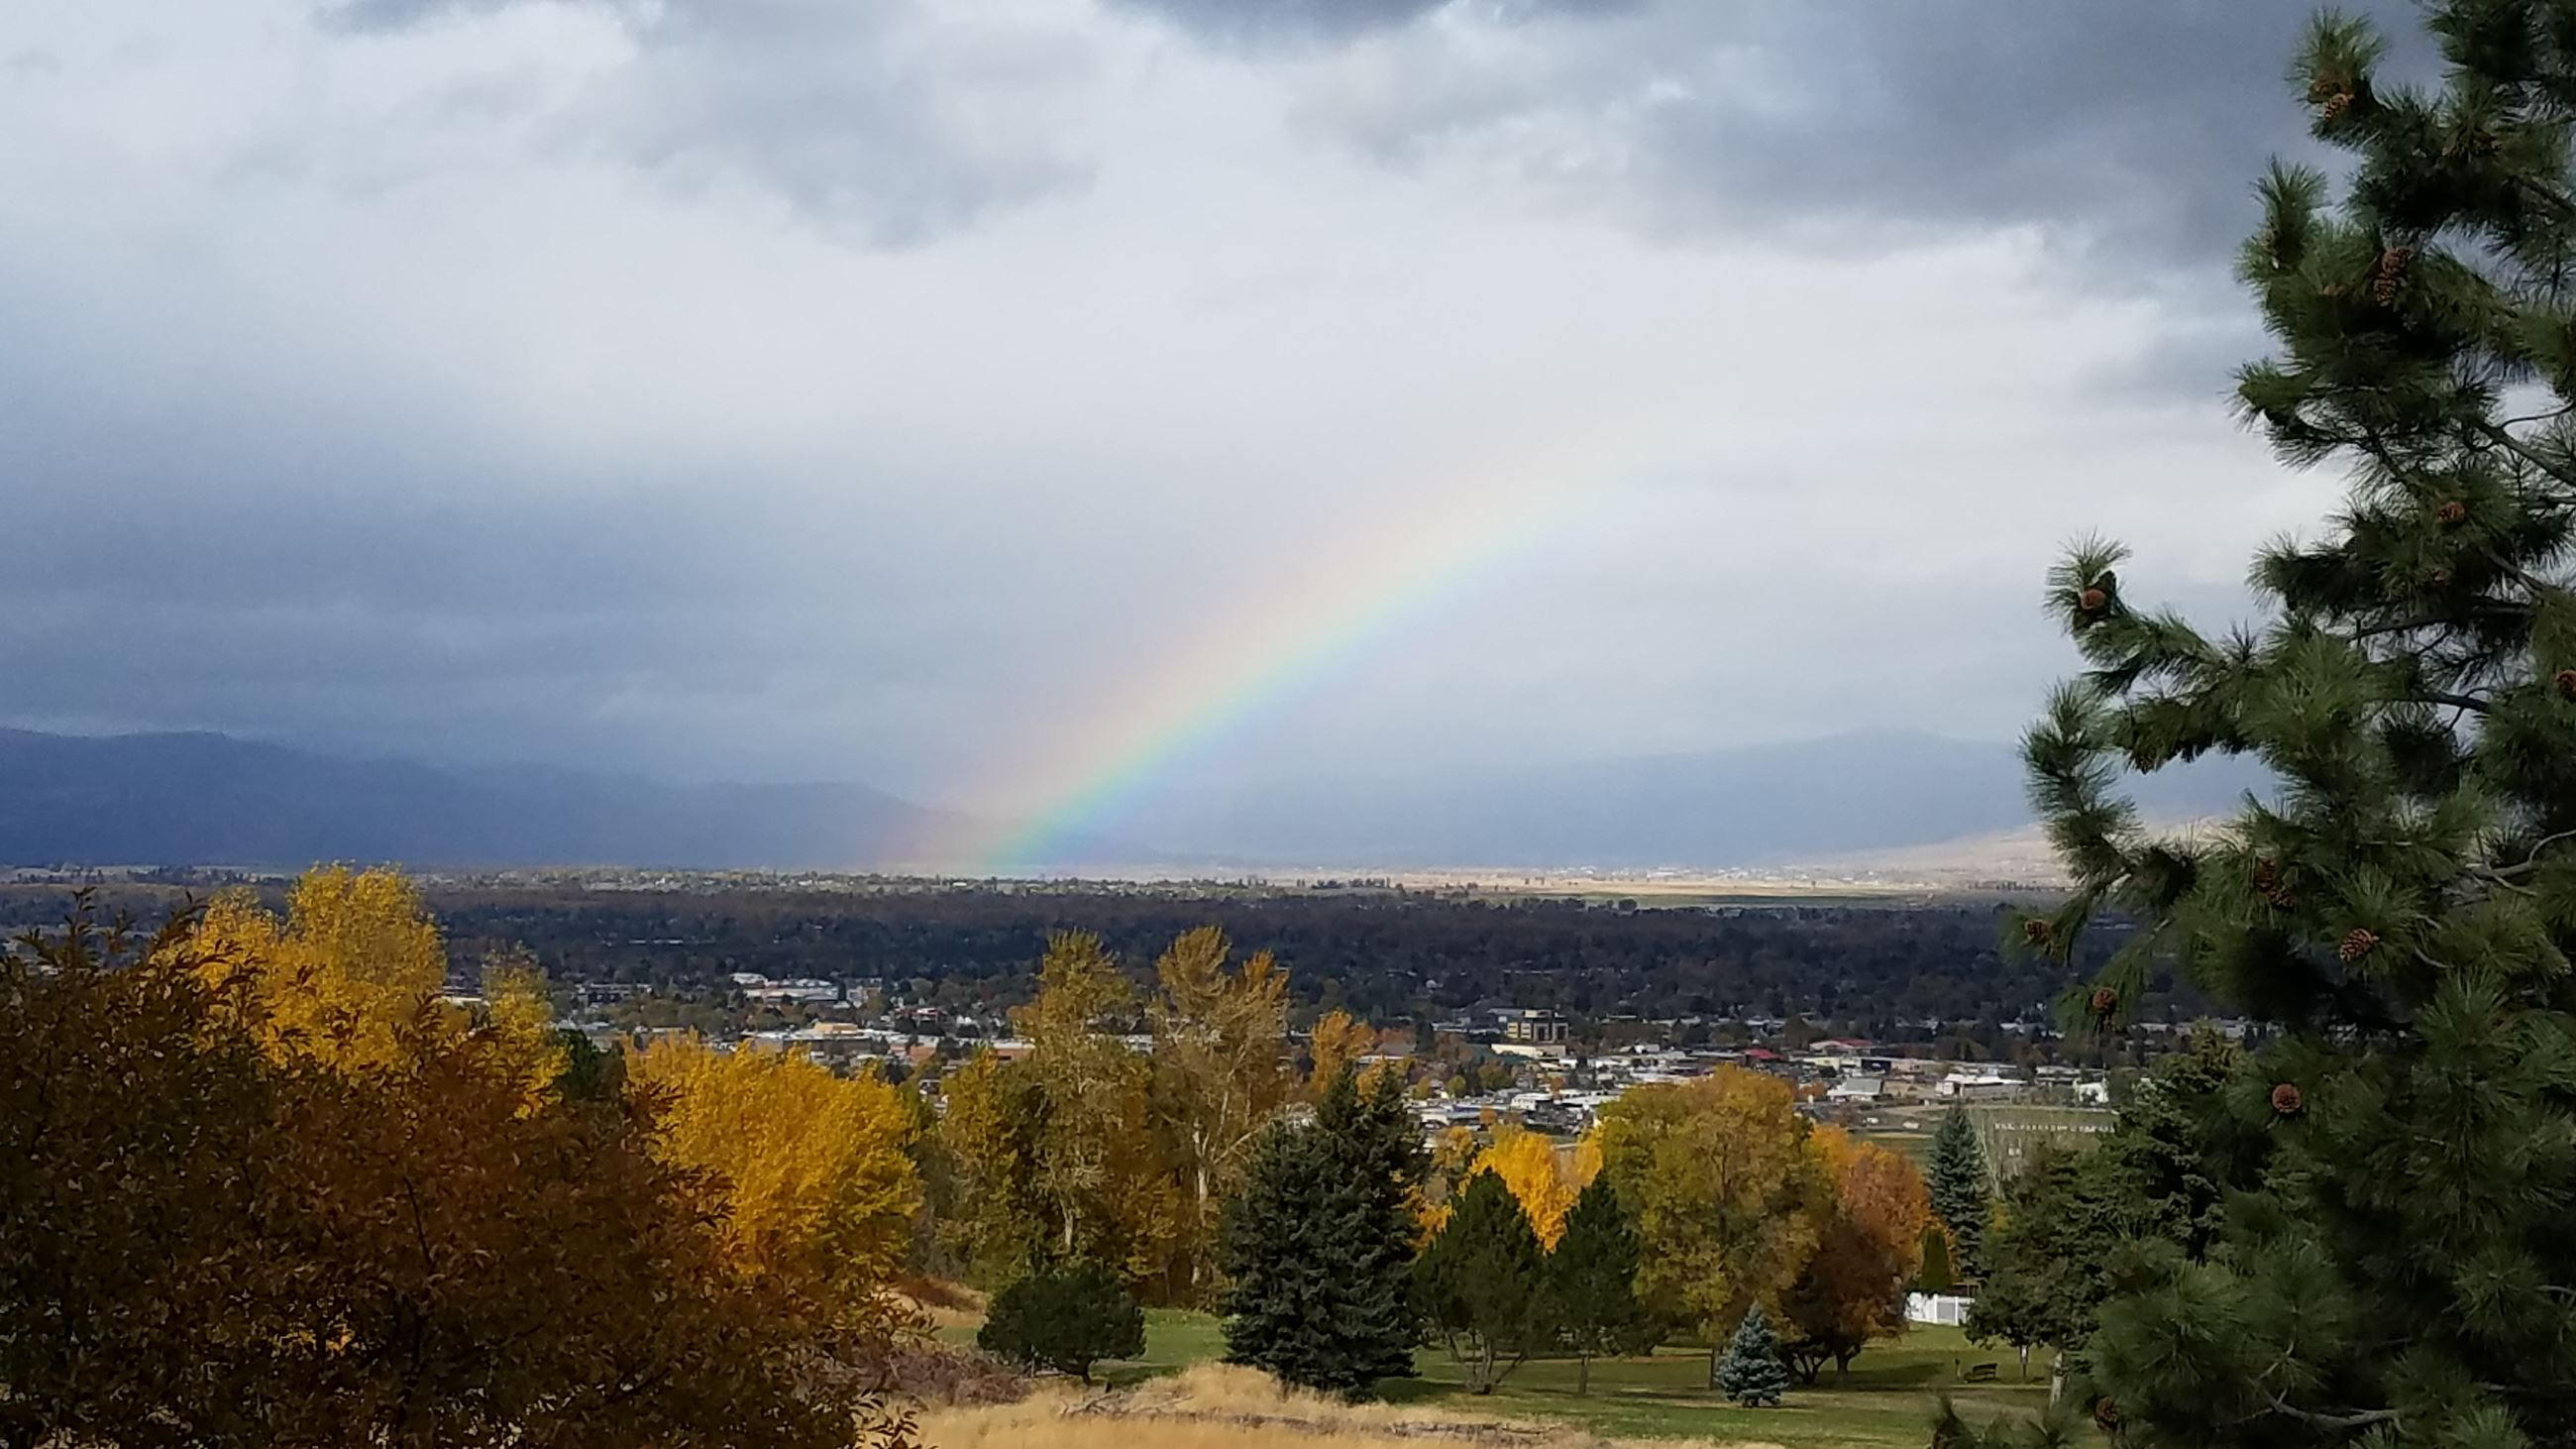 View of Missoula Valley with rainbow in the sky